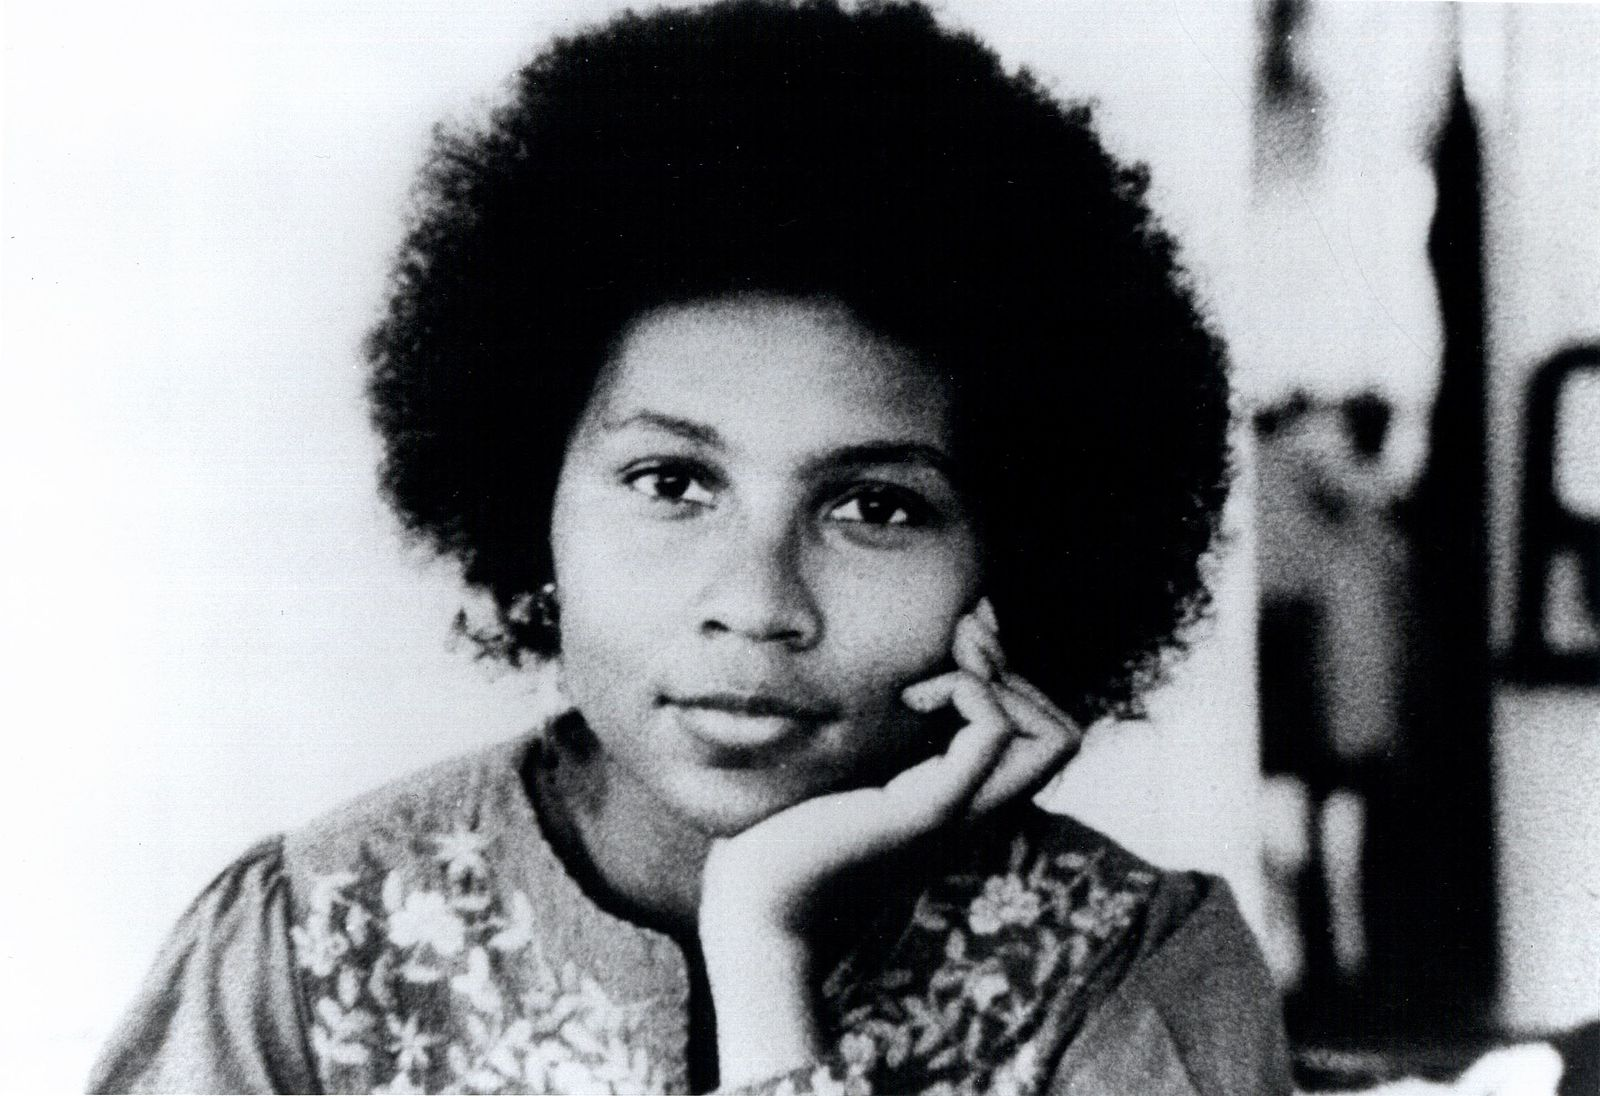 bell hooks, feminist scholar, educator, and author of Teaching to Transgress, The Will to Change, and many other books